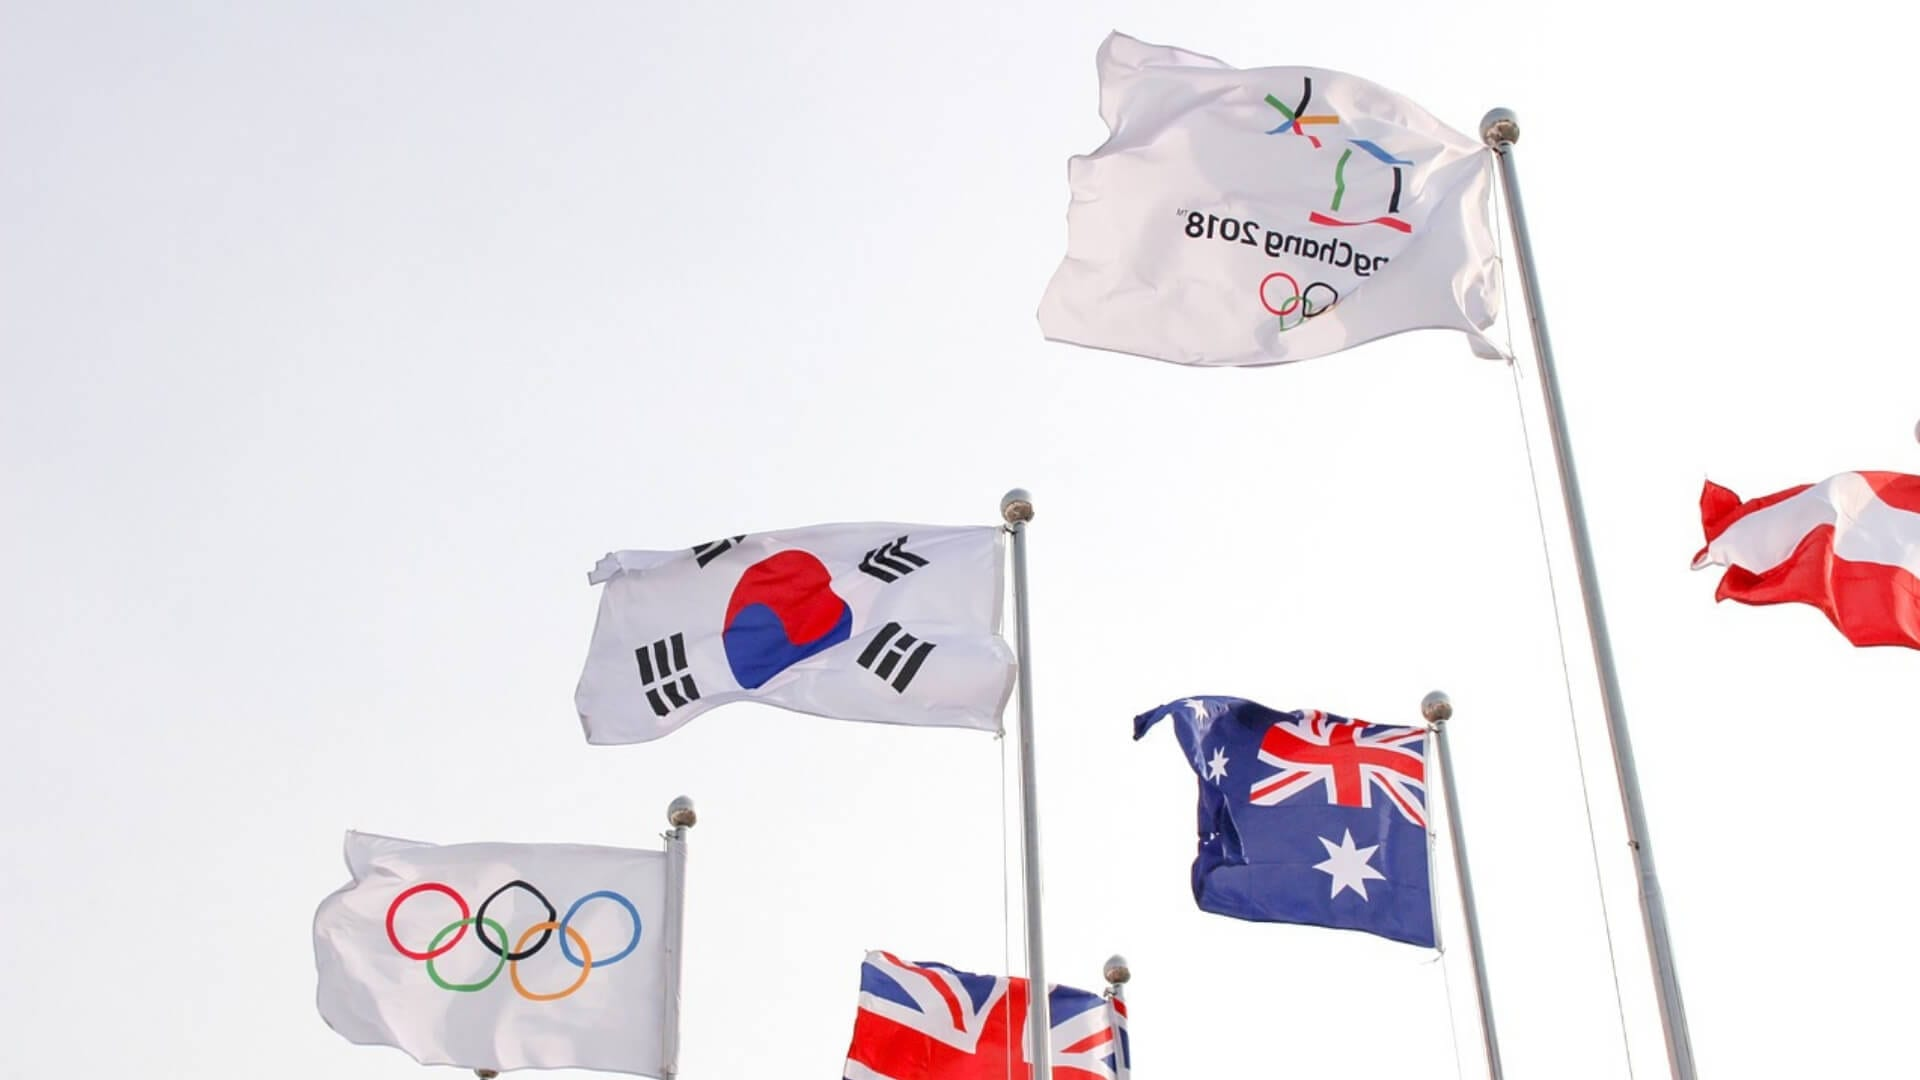 Five flags are fluttering in the wind during the olympic winter games in Korea.